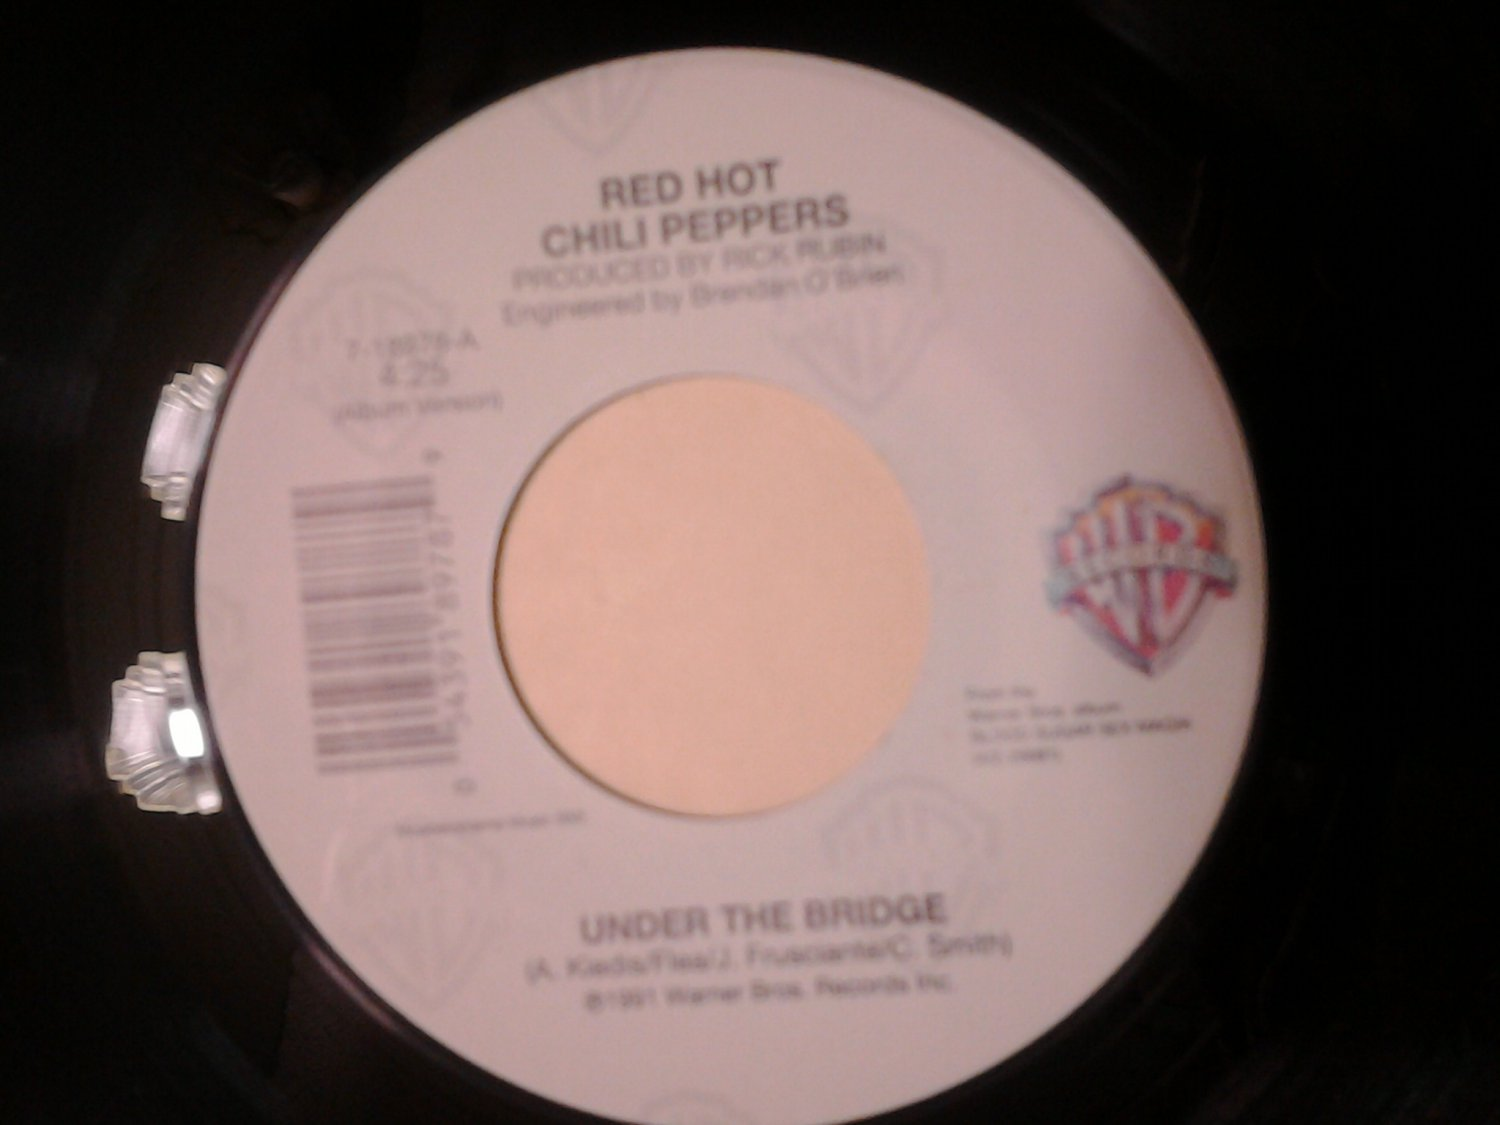 45 RED HOT CHILI PEPPERS under the bridge b/w the righteous & the wicked vintage vinyl record